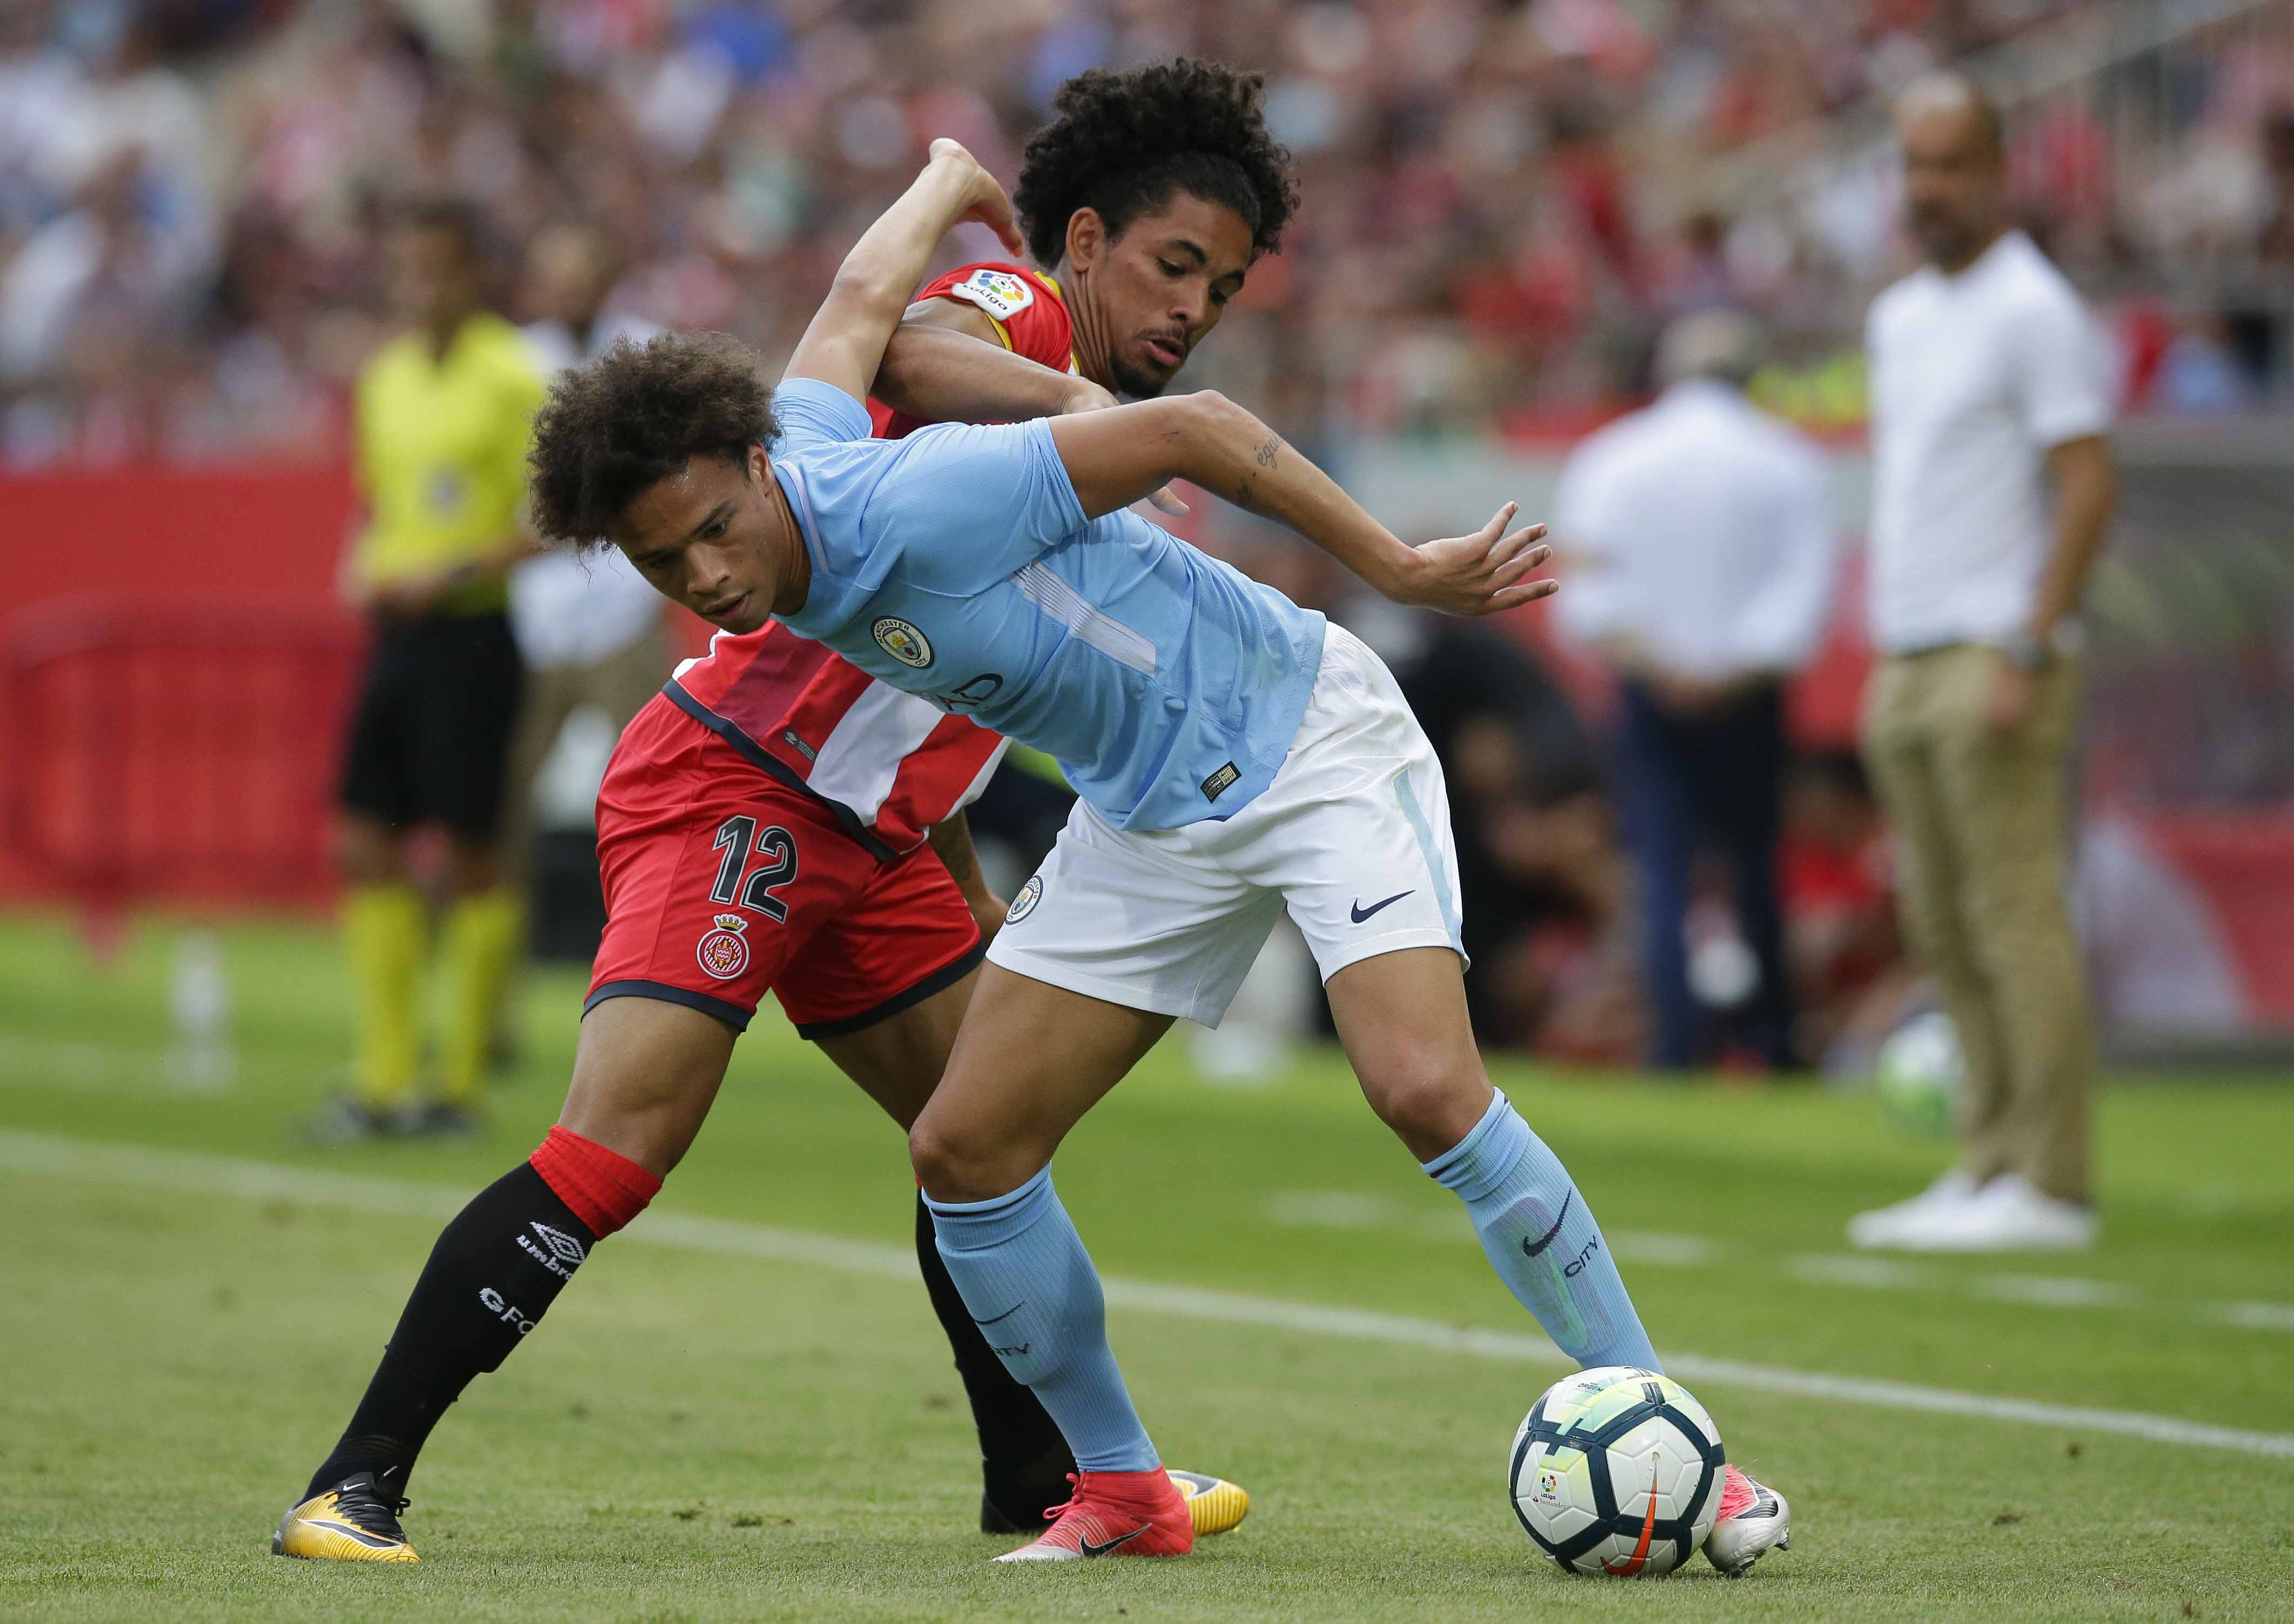 Manchester City's Leroy Sane (right) duels for the ball against Girona's Douglas Luiz during the Costa Brava trophy friendly soccer match between Girona and Manchester City at the Montilivi stadium in Girona, Spain on Tuesday